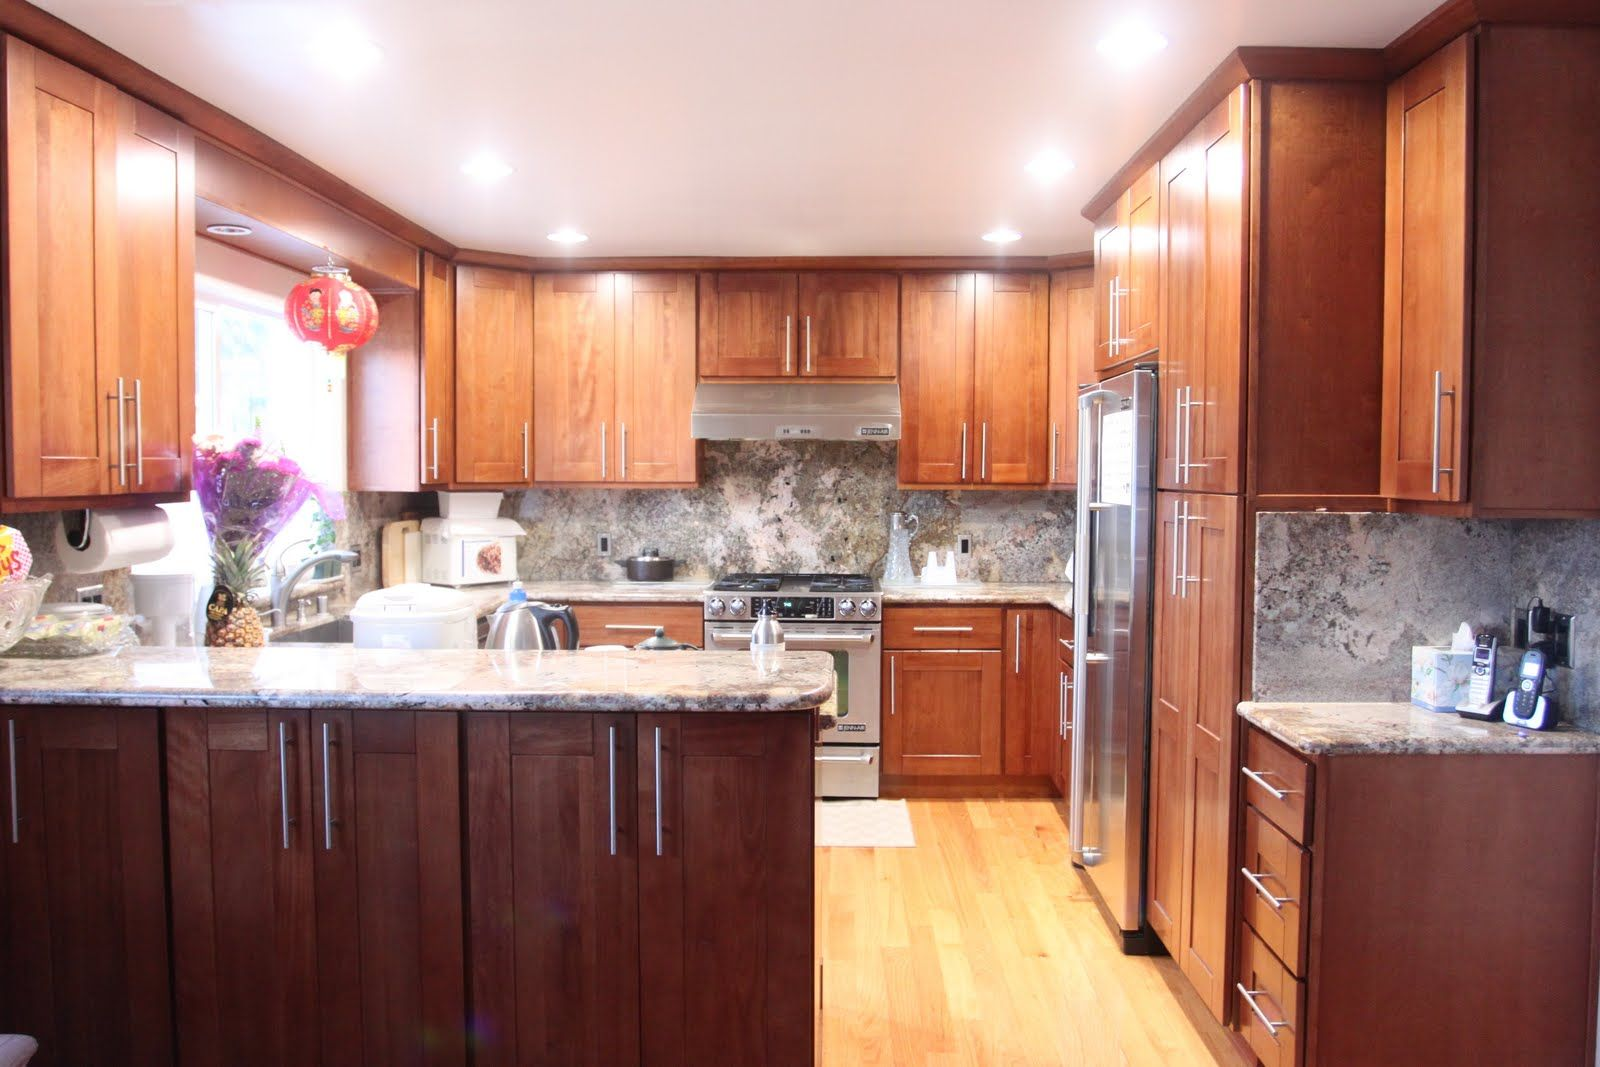 Cherry shaker kitchens cherry shaker kitchen cabinets bck cabinets